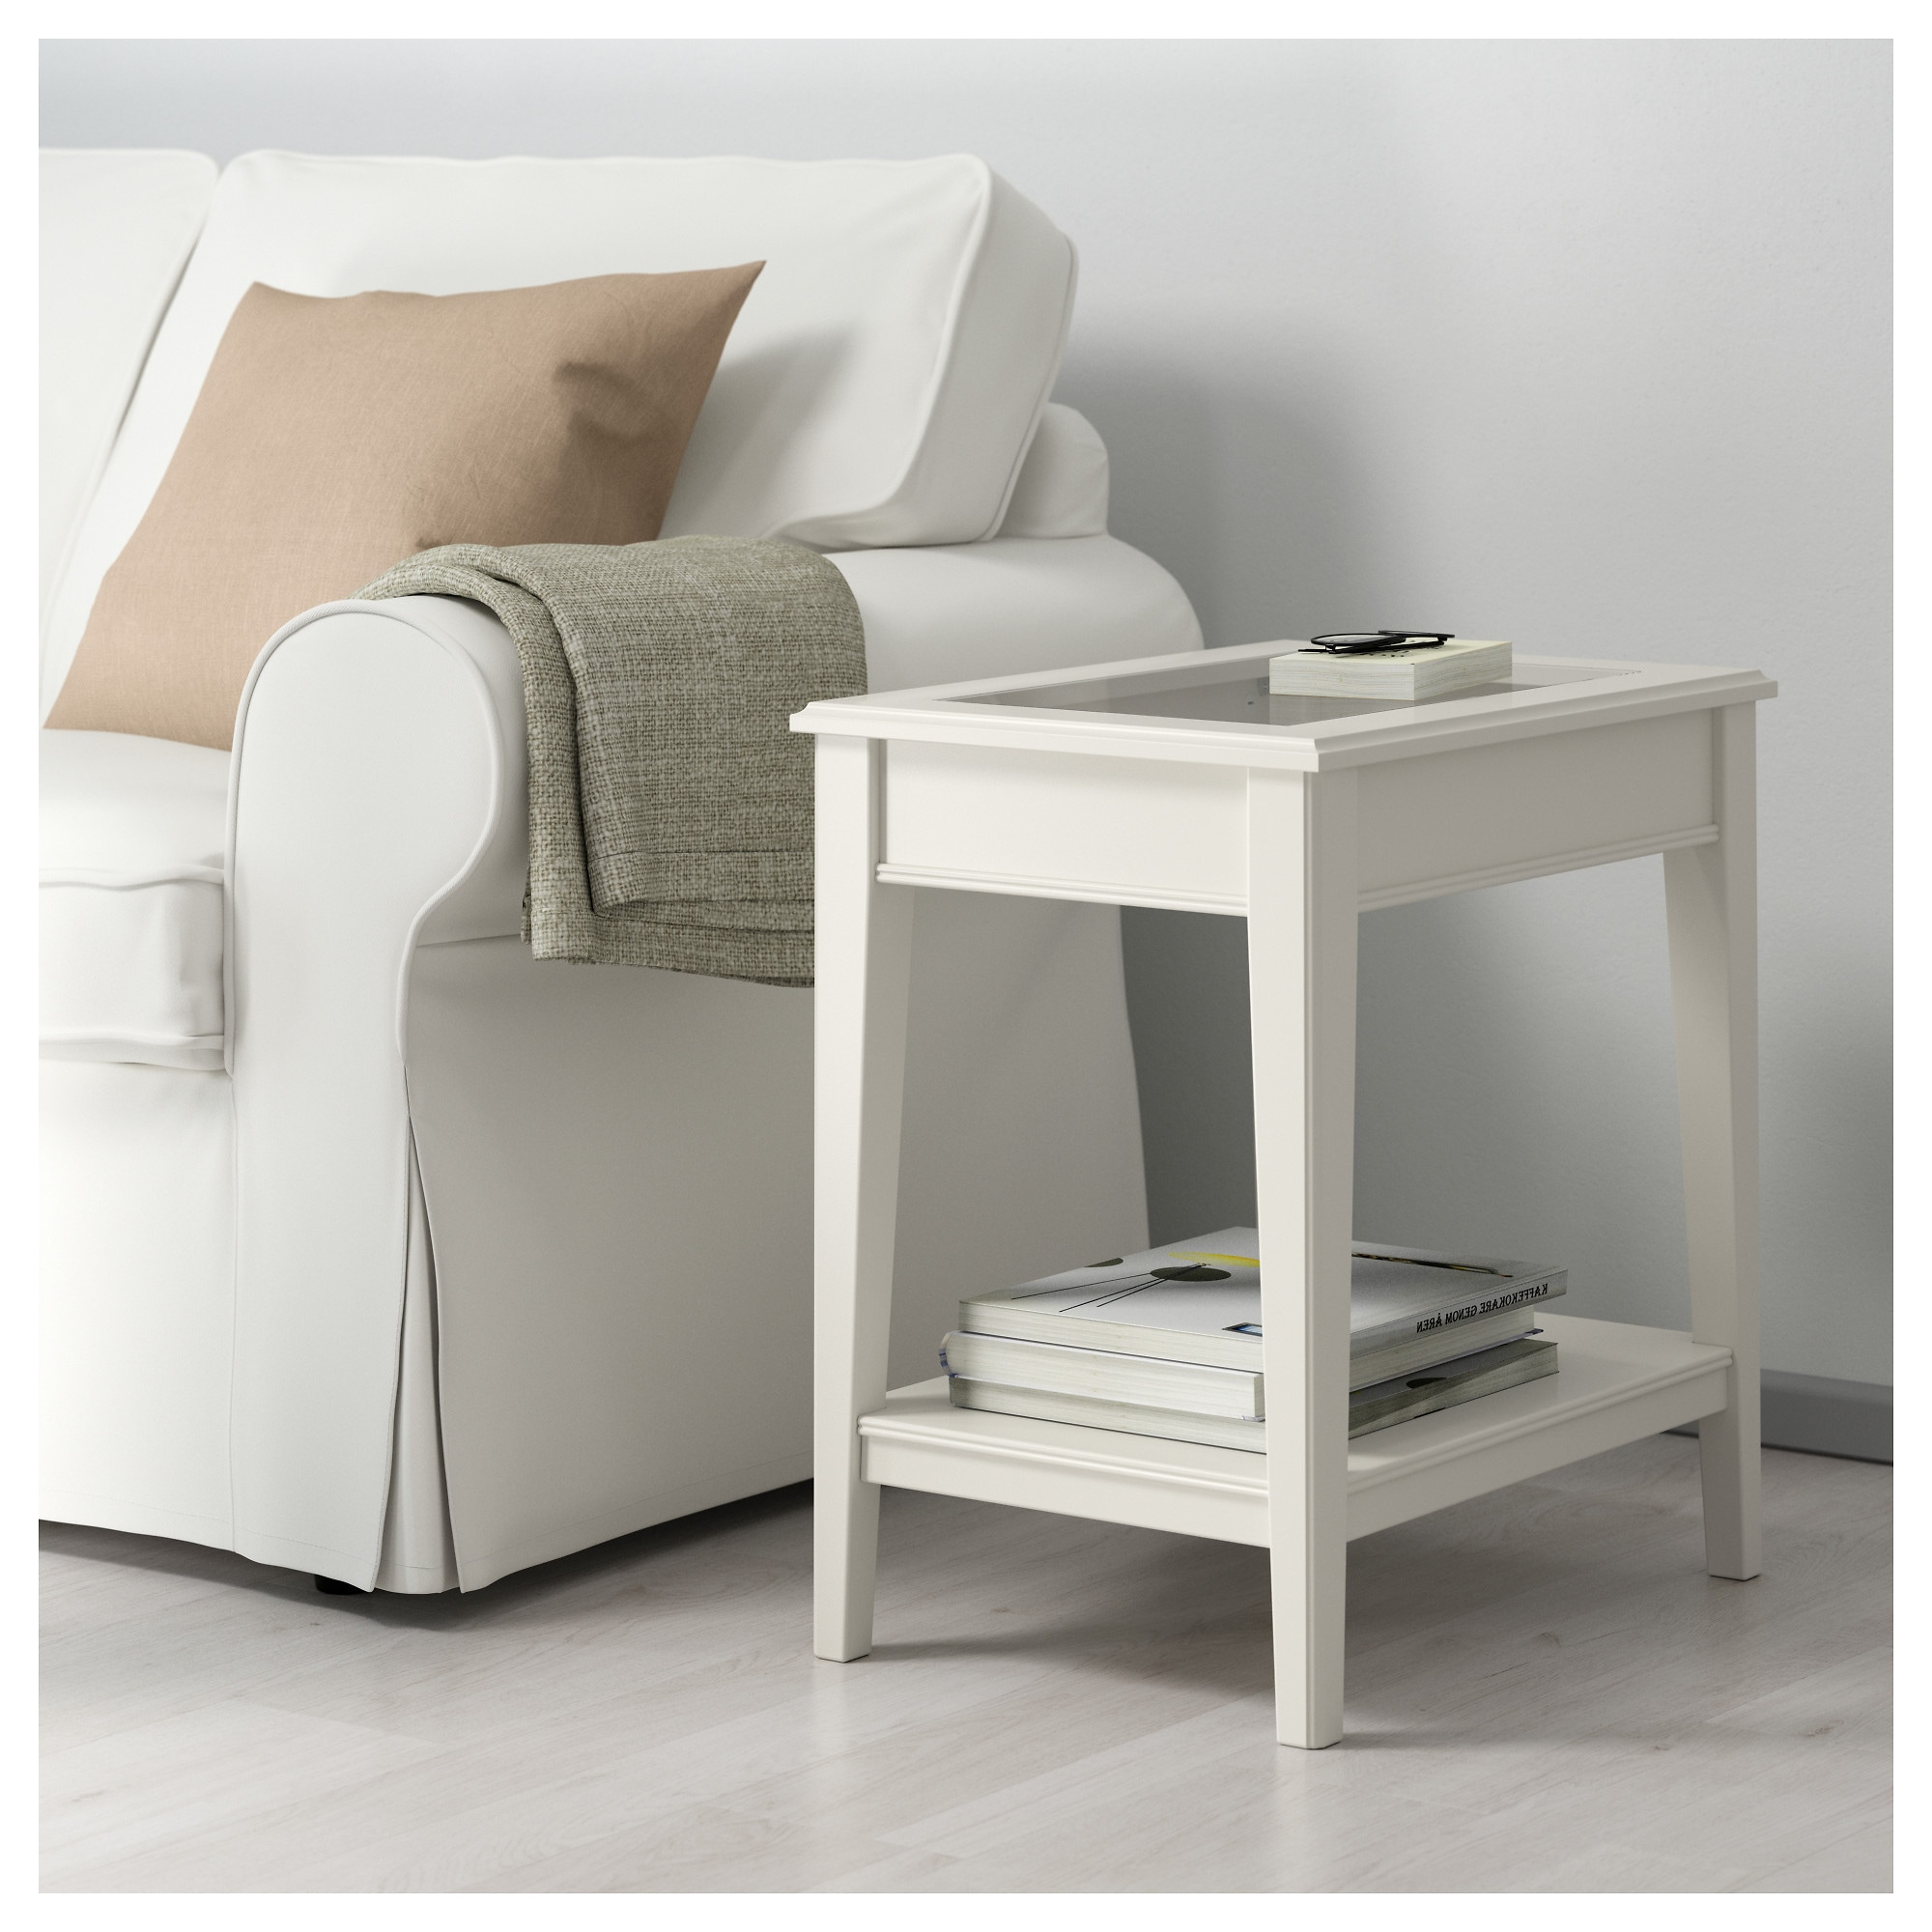 LIATORP Side table white glass IKEA